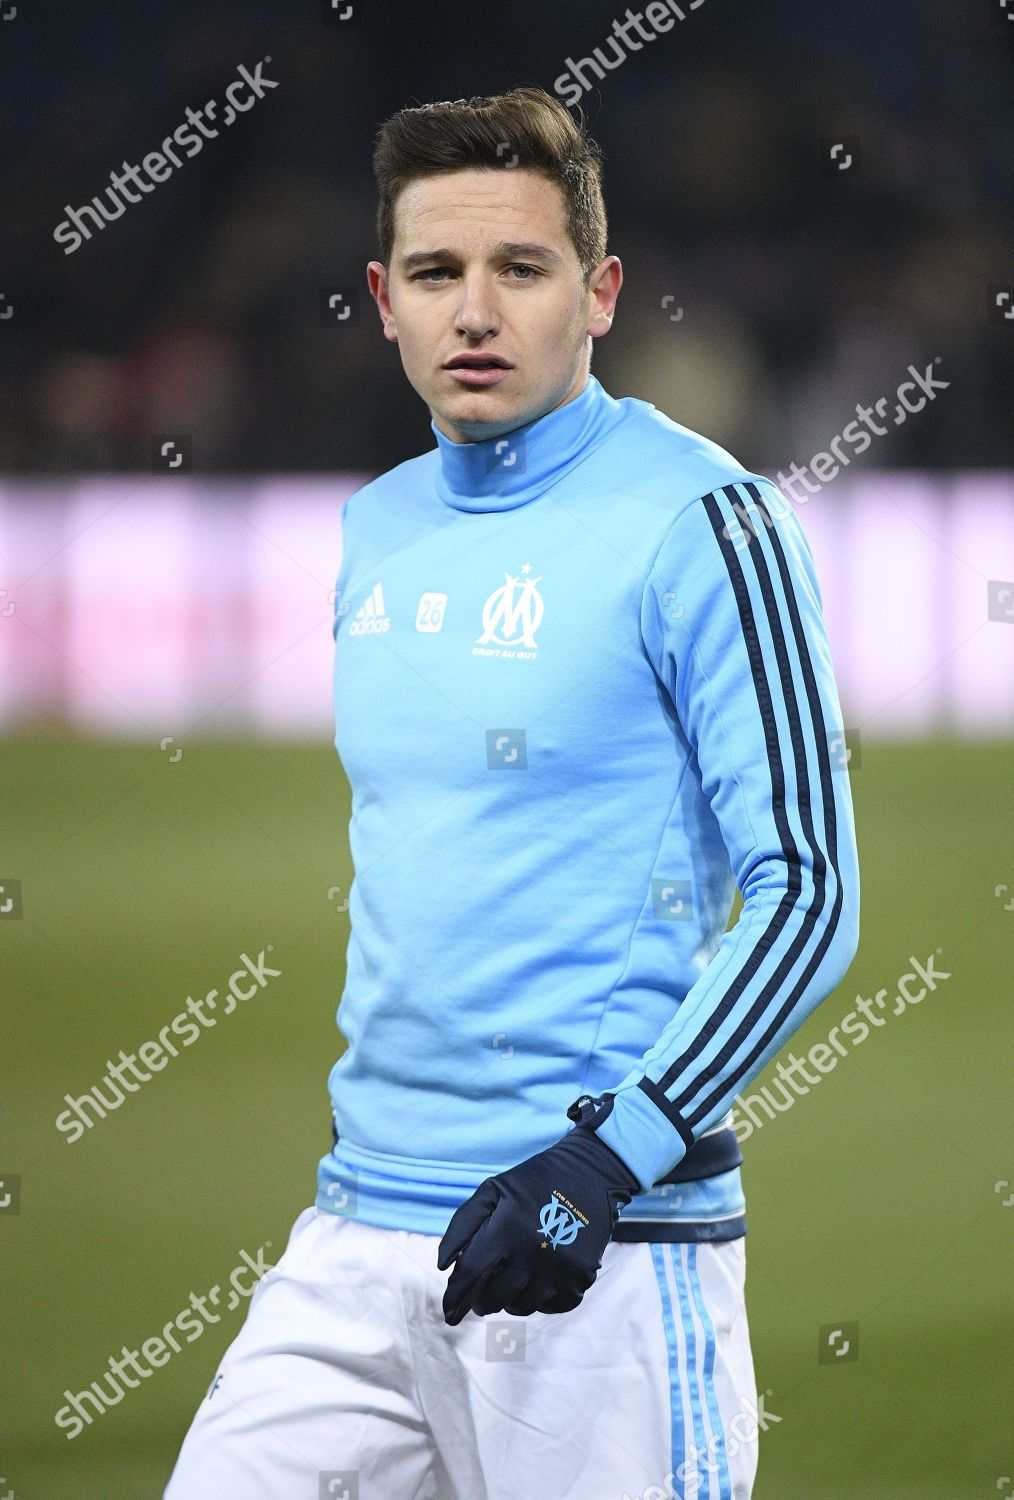 Florian thauvin during french cup match editorial stock photo stock image shutterstock - Coupe de france predictions ...